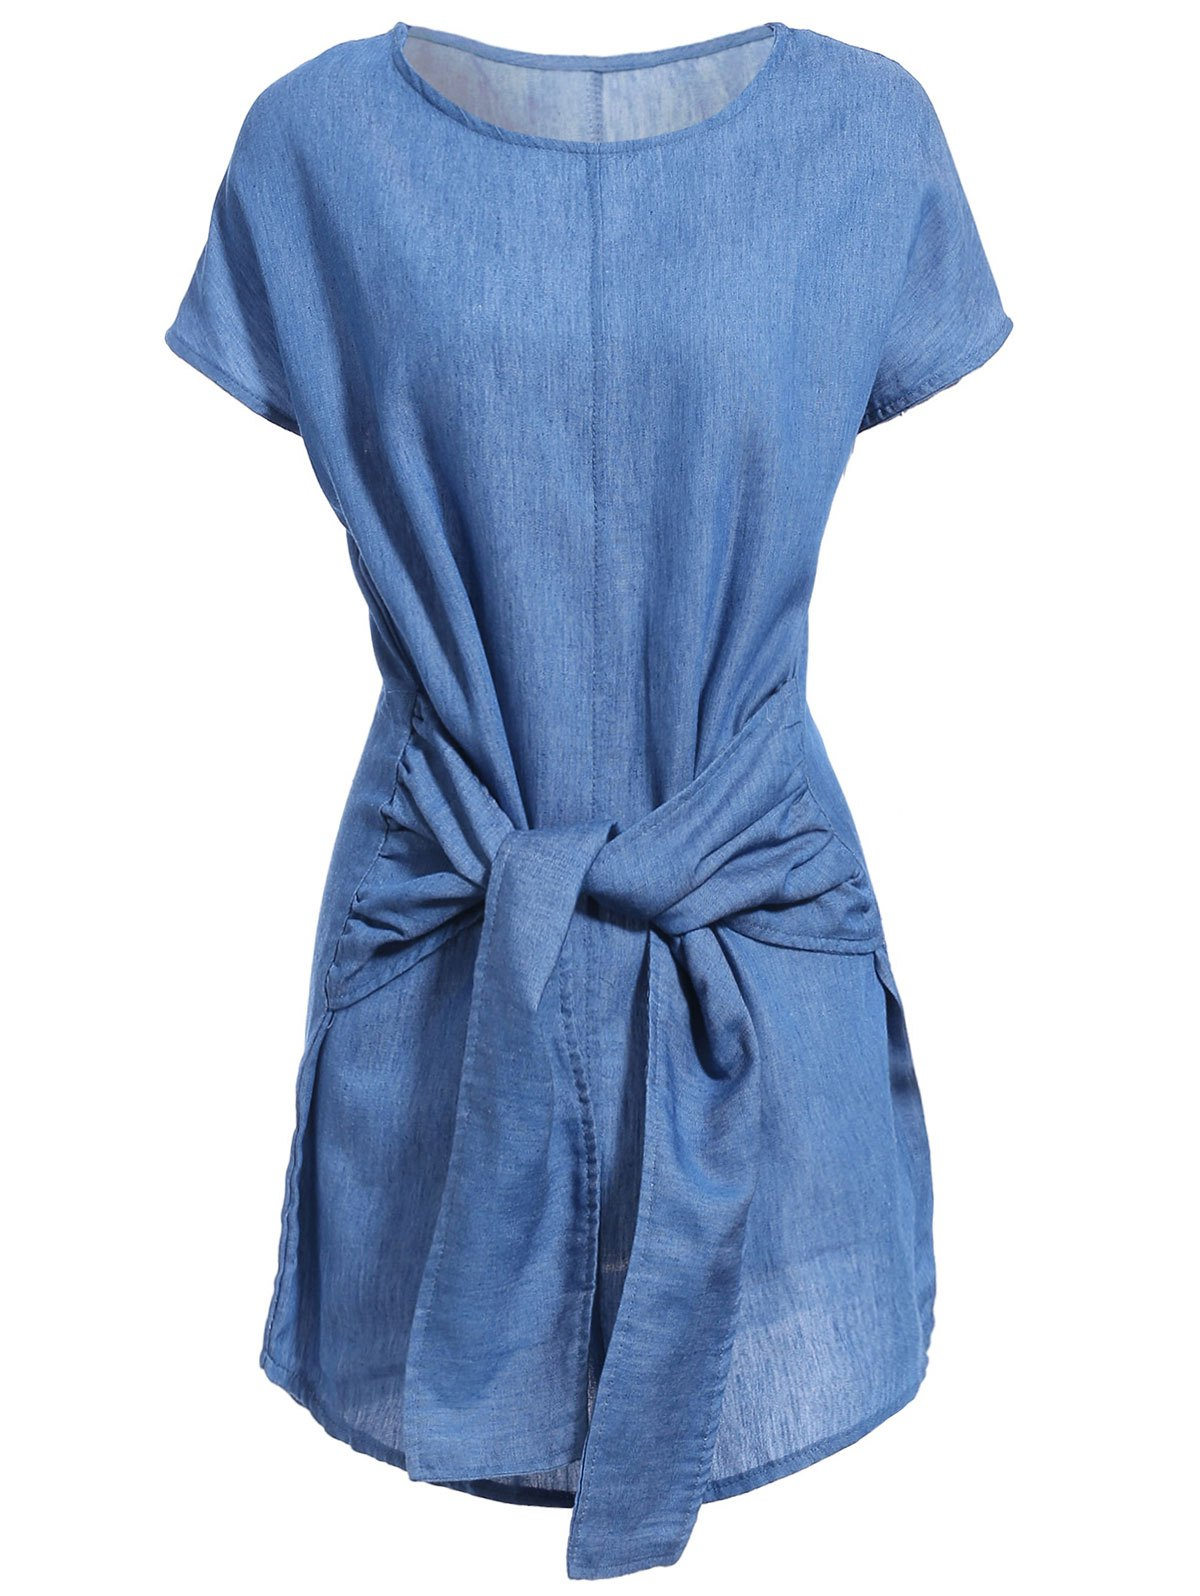 Round Neck Bat-Wing Sleeve Solid Color Tied Denim Dress